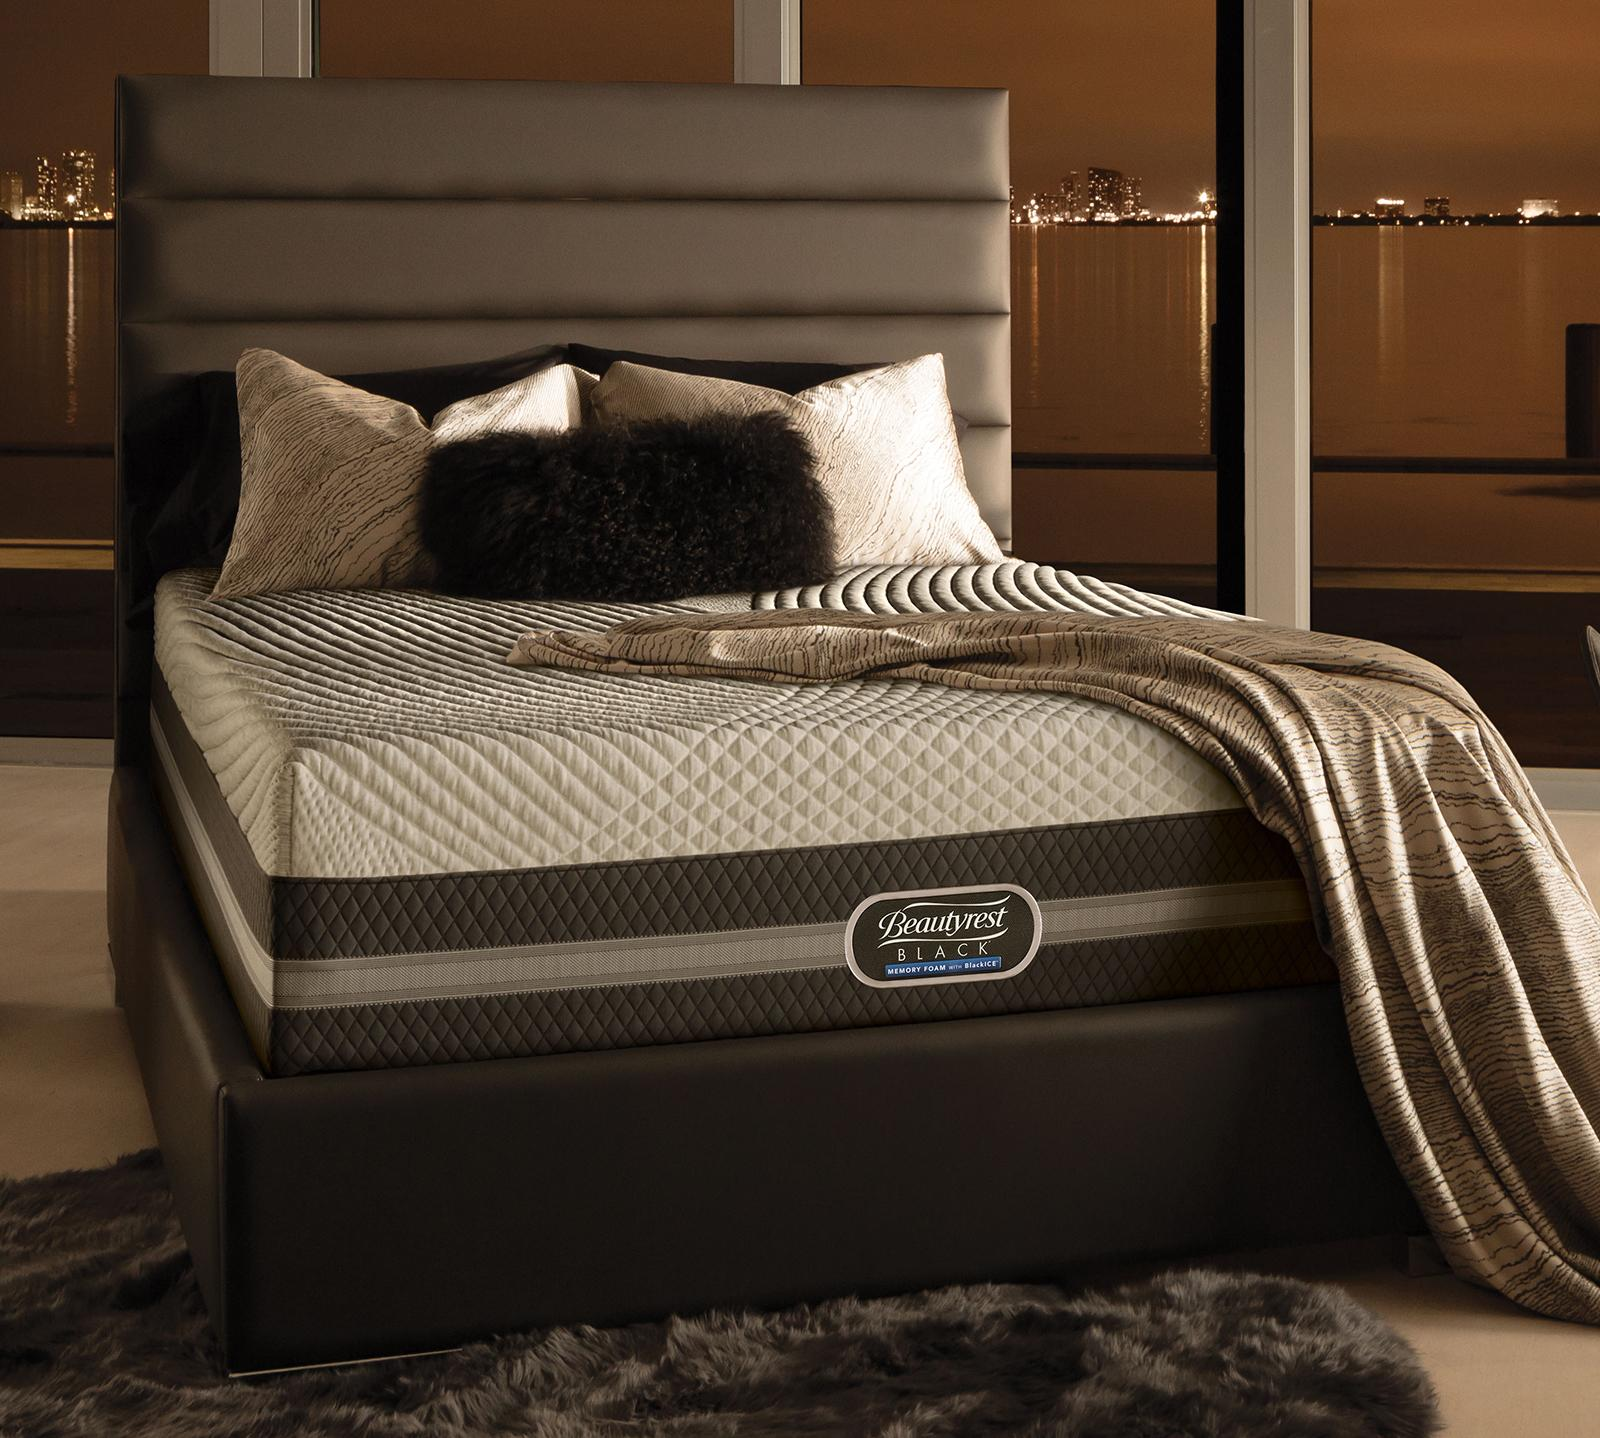 Beautyrest Black King Size Memory Foam With Blackice Nadia 14